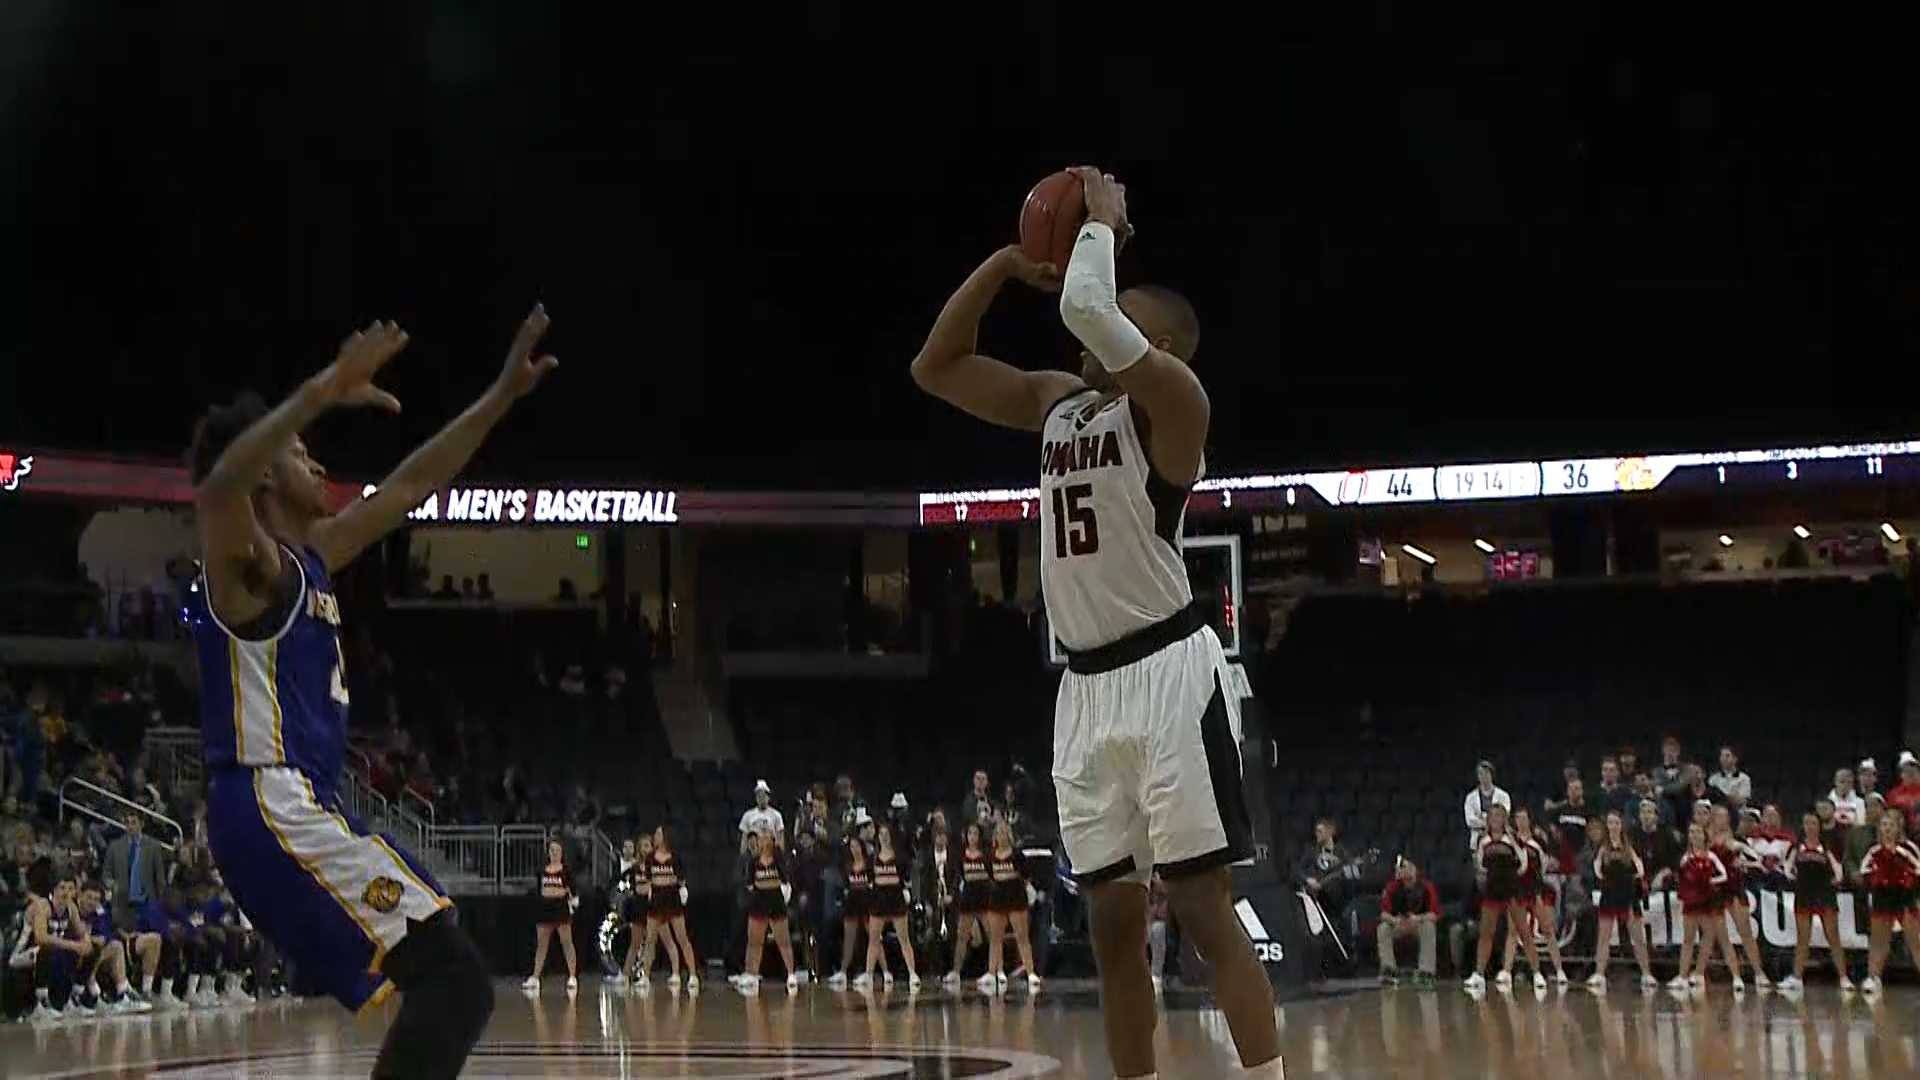 UNO basketball player Tre'Shawn Thurman to transfer